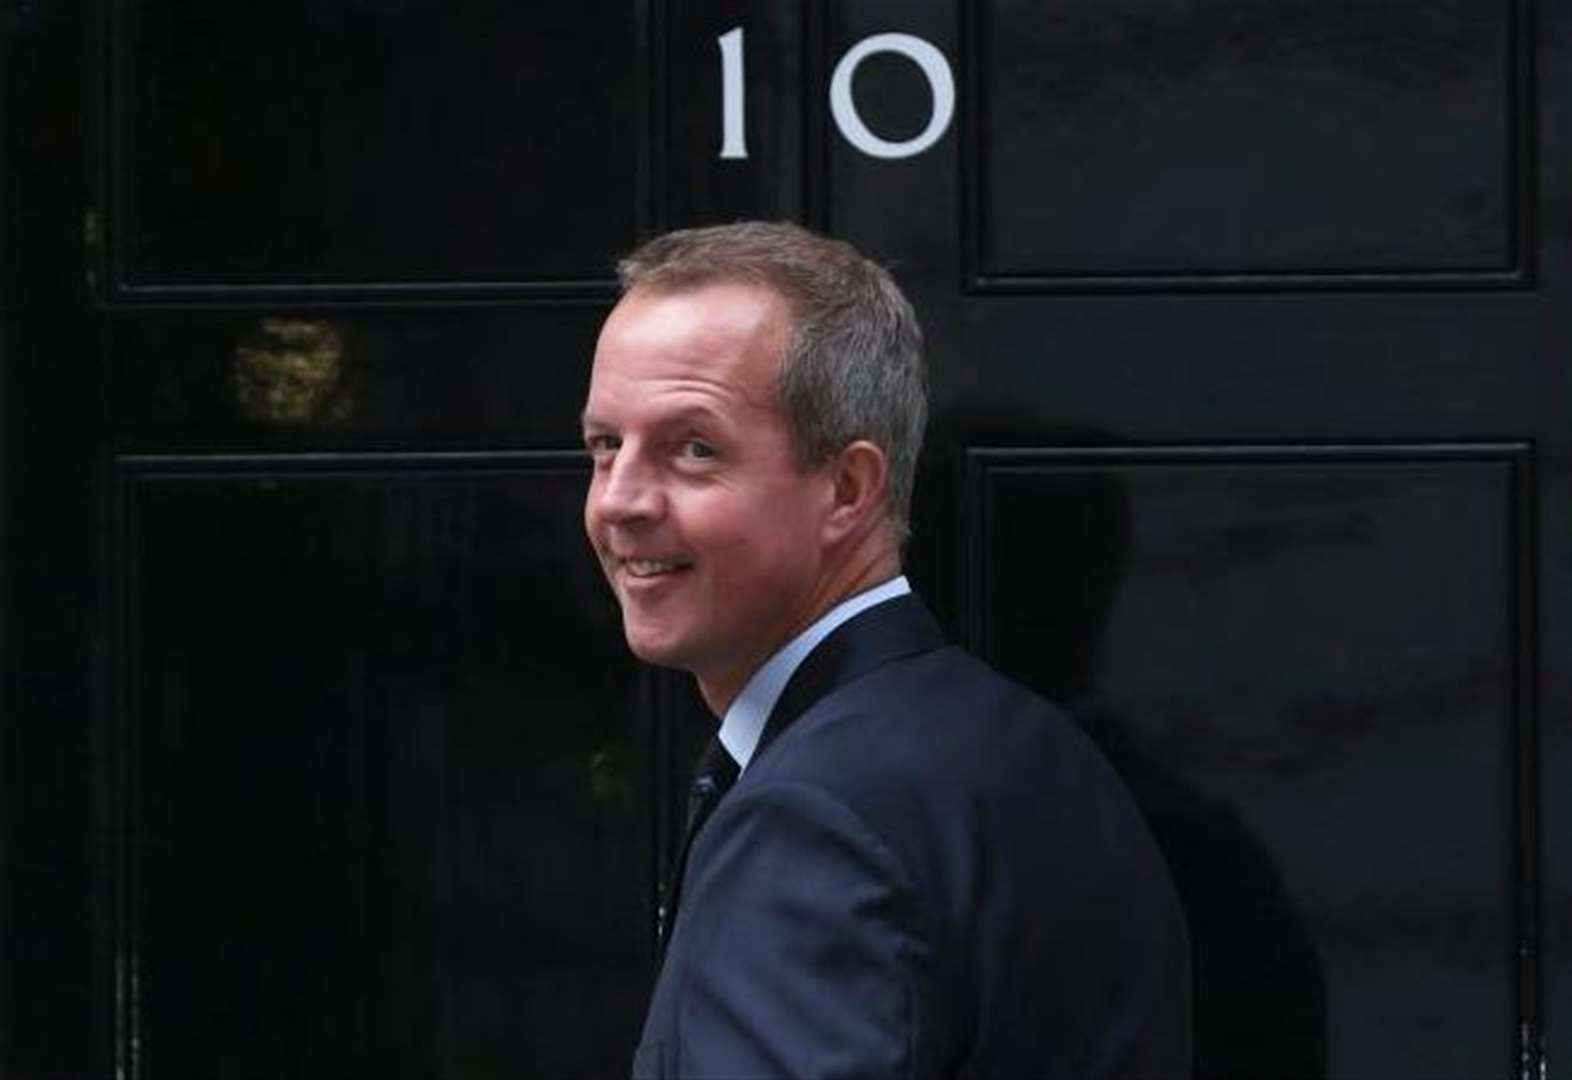 Conservative MP Nick Boles says he voted for Theresa May to keep her job and is glad she prevailed